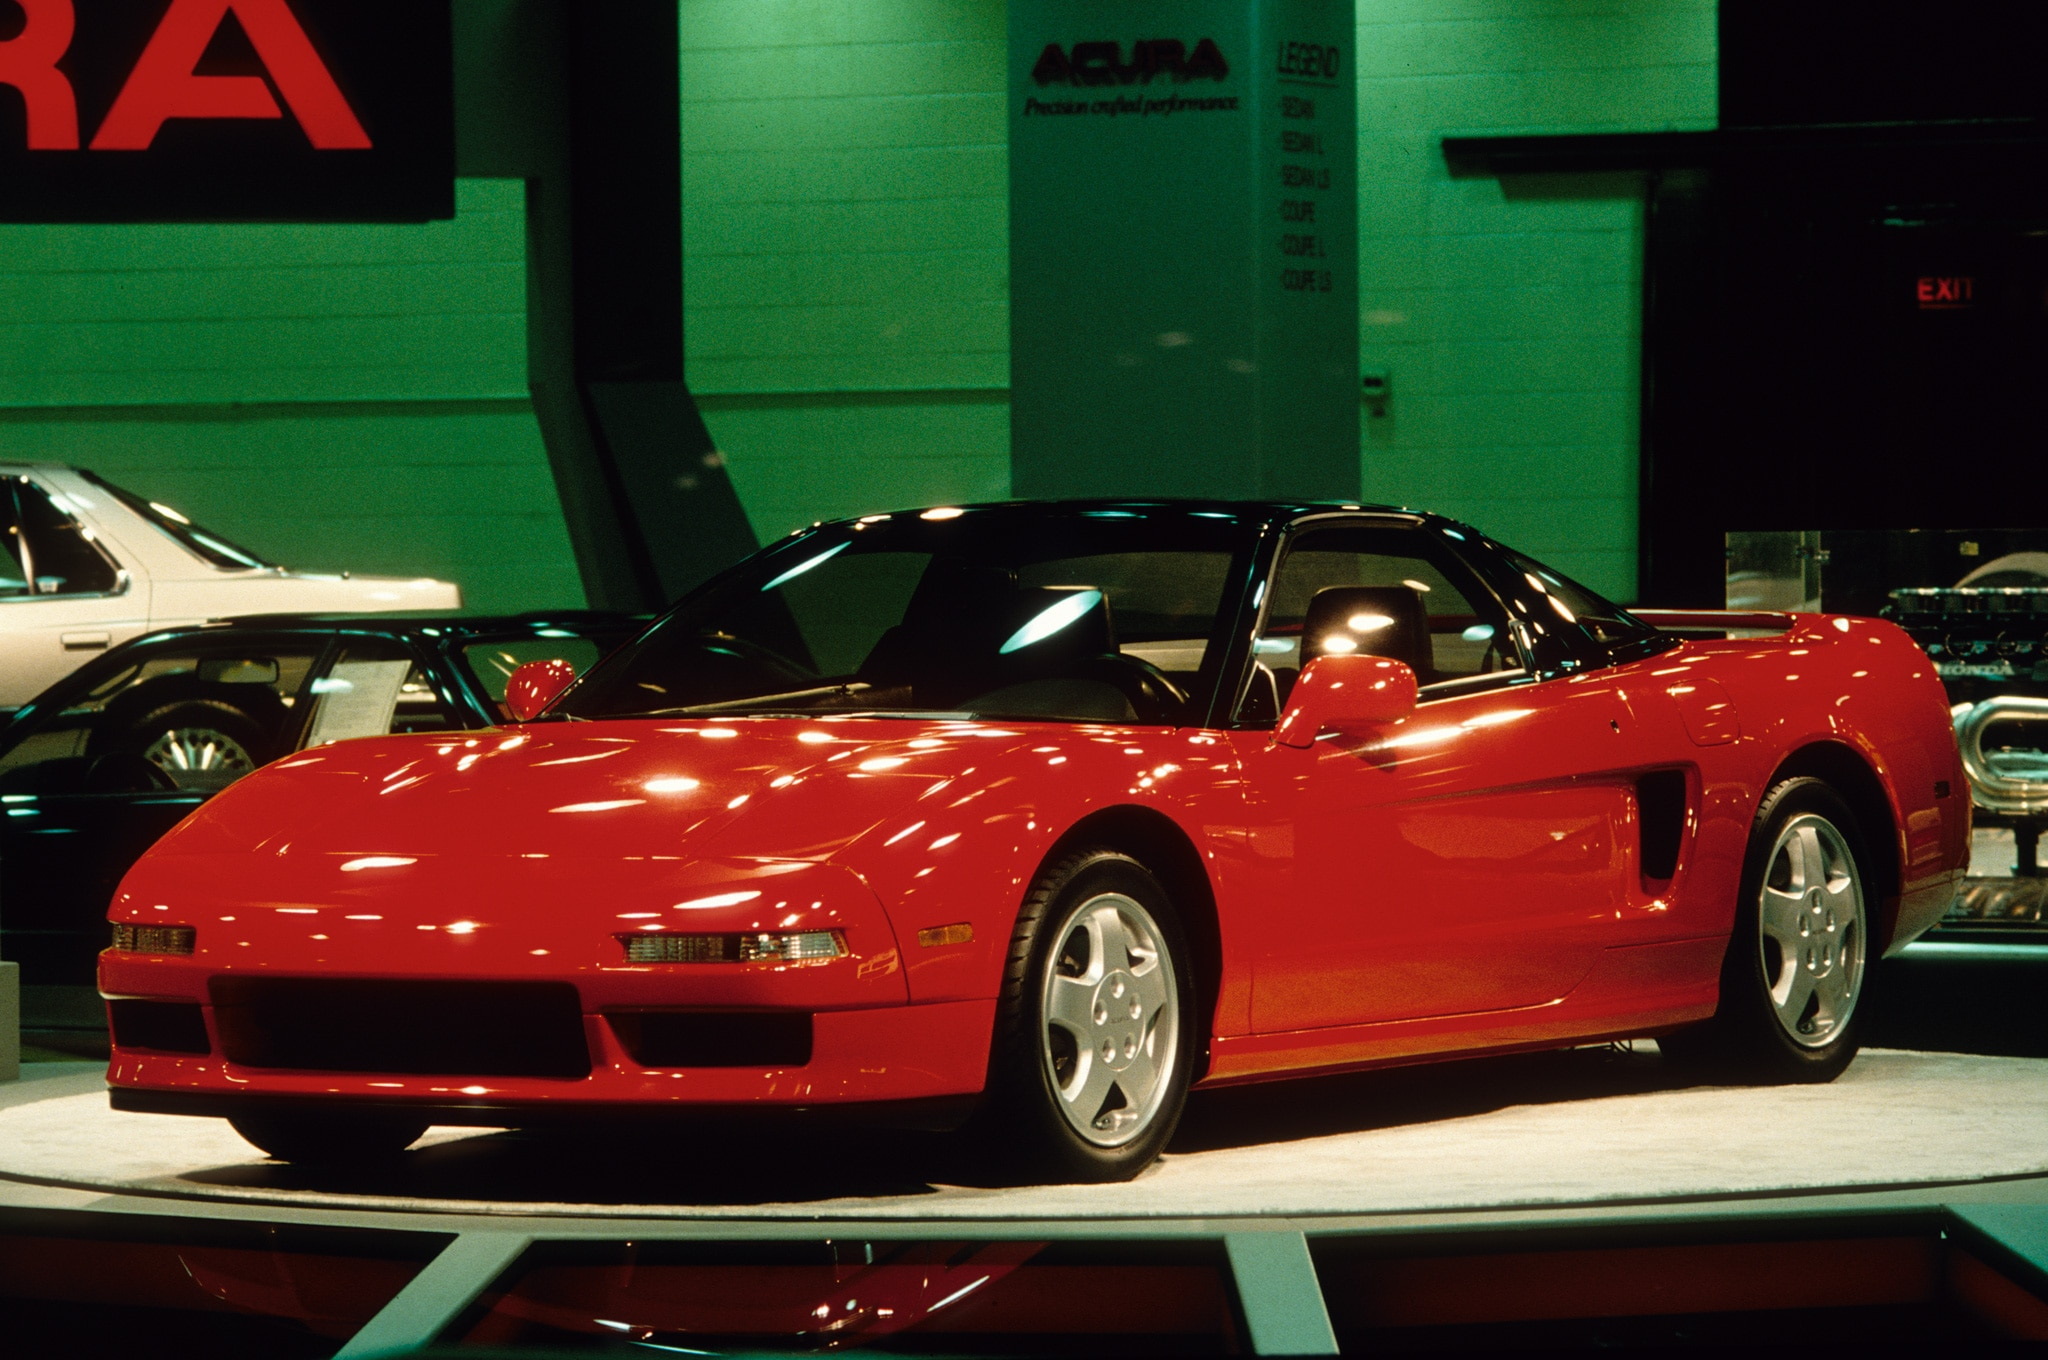 5 Japanese Cars That Shocked The Auto Industry 25 Years